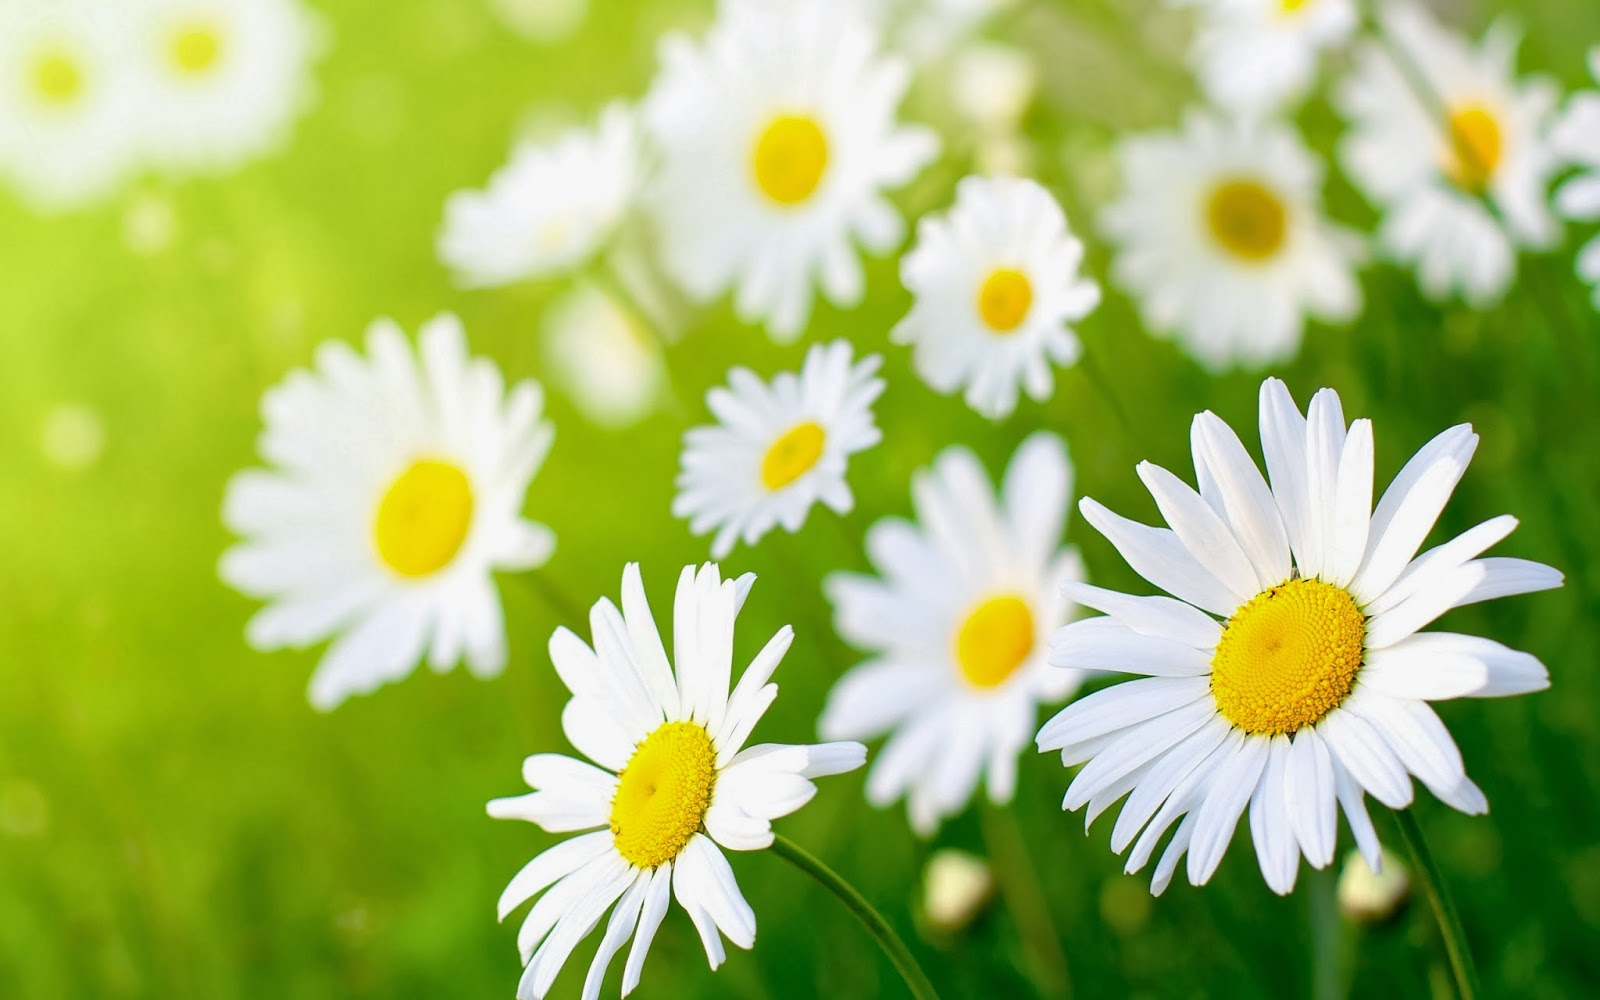 Daisy flower wallpaper beautiful desktop wallpapers 2014